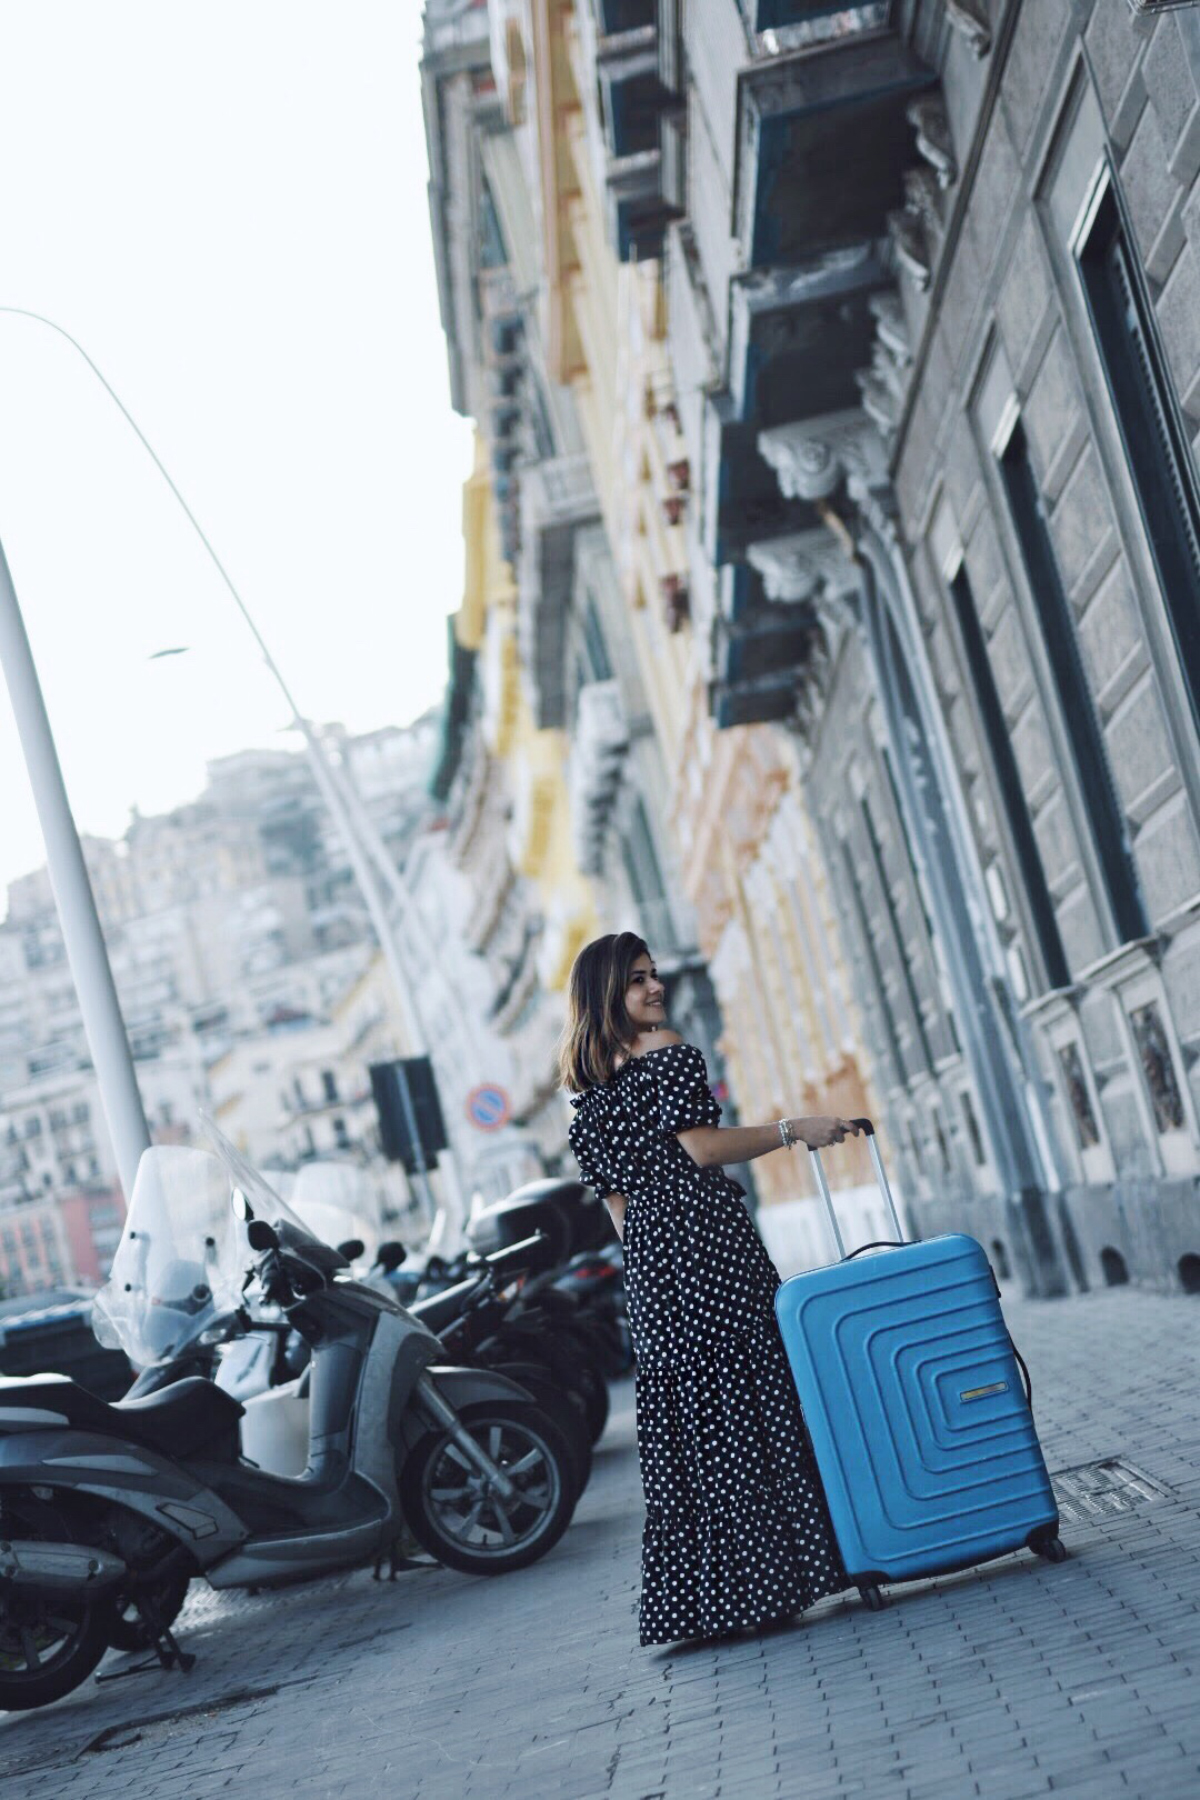 Carolina Hellal of Chic Talk wearing a shein polka dot dress and an American Tourister bag